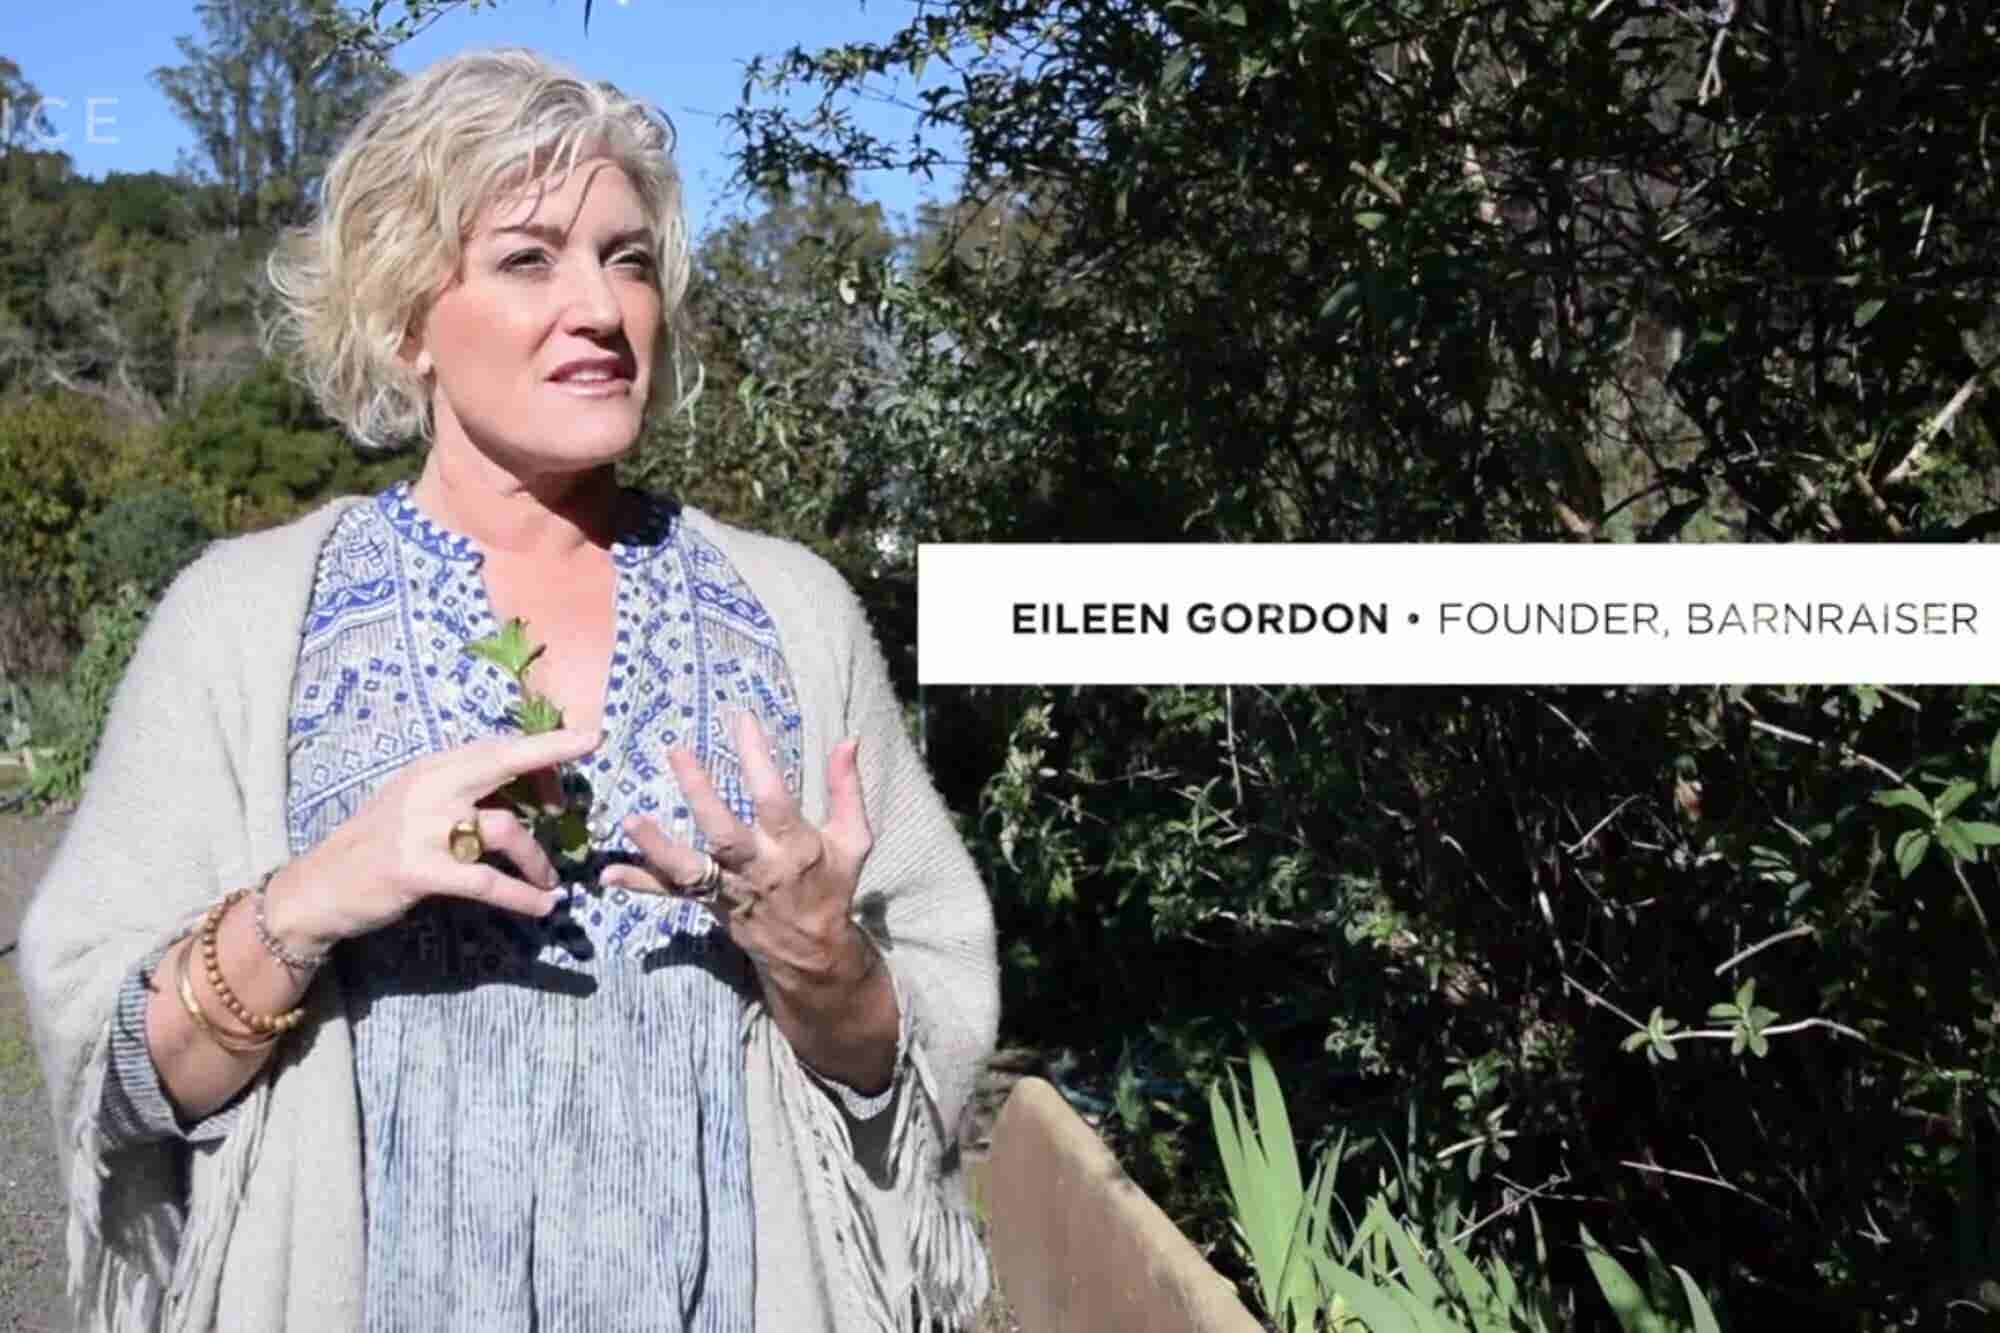 Eileen Gordon Turned a Good Old-Fashioned Barnraiser Into a Growing Startup